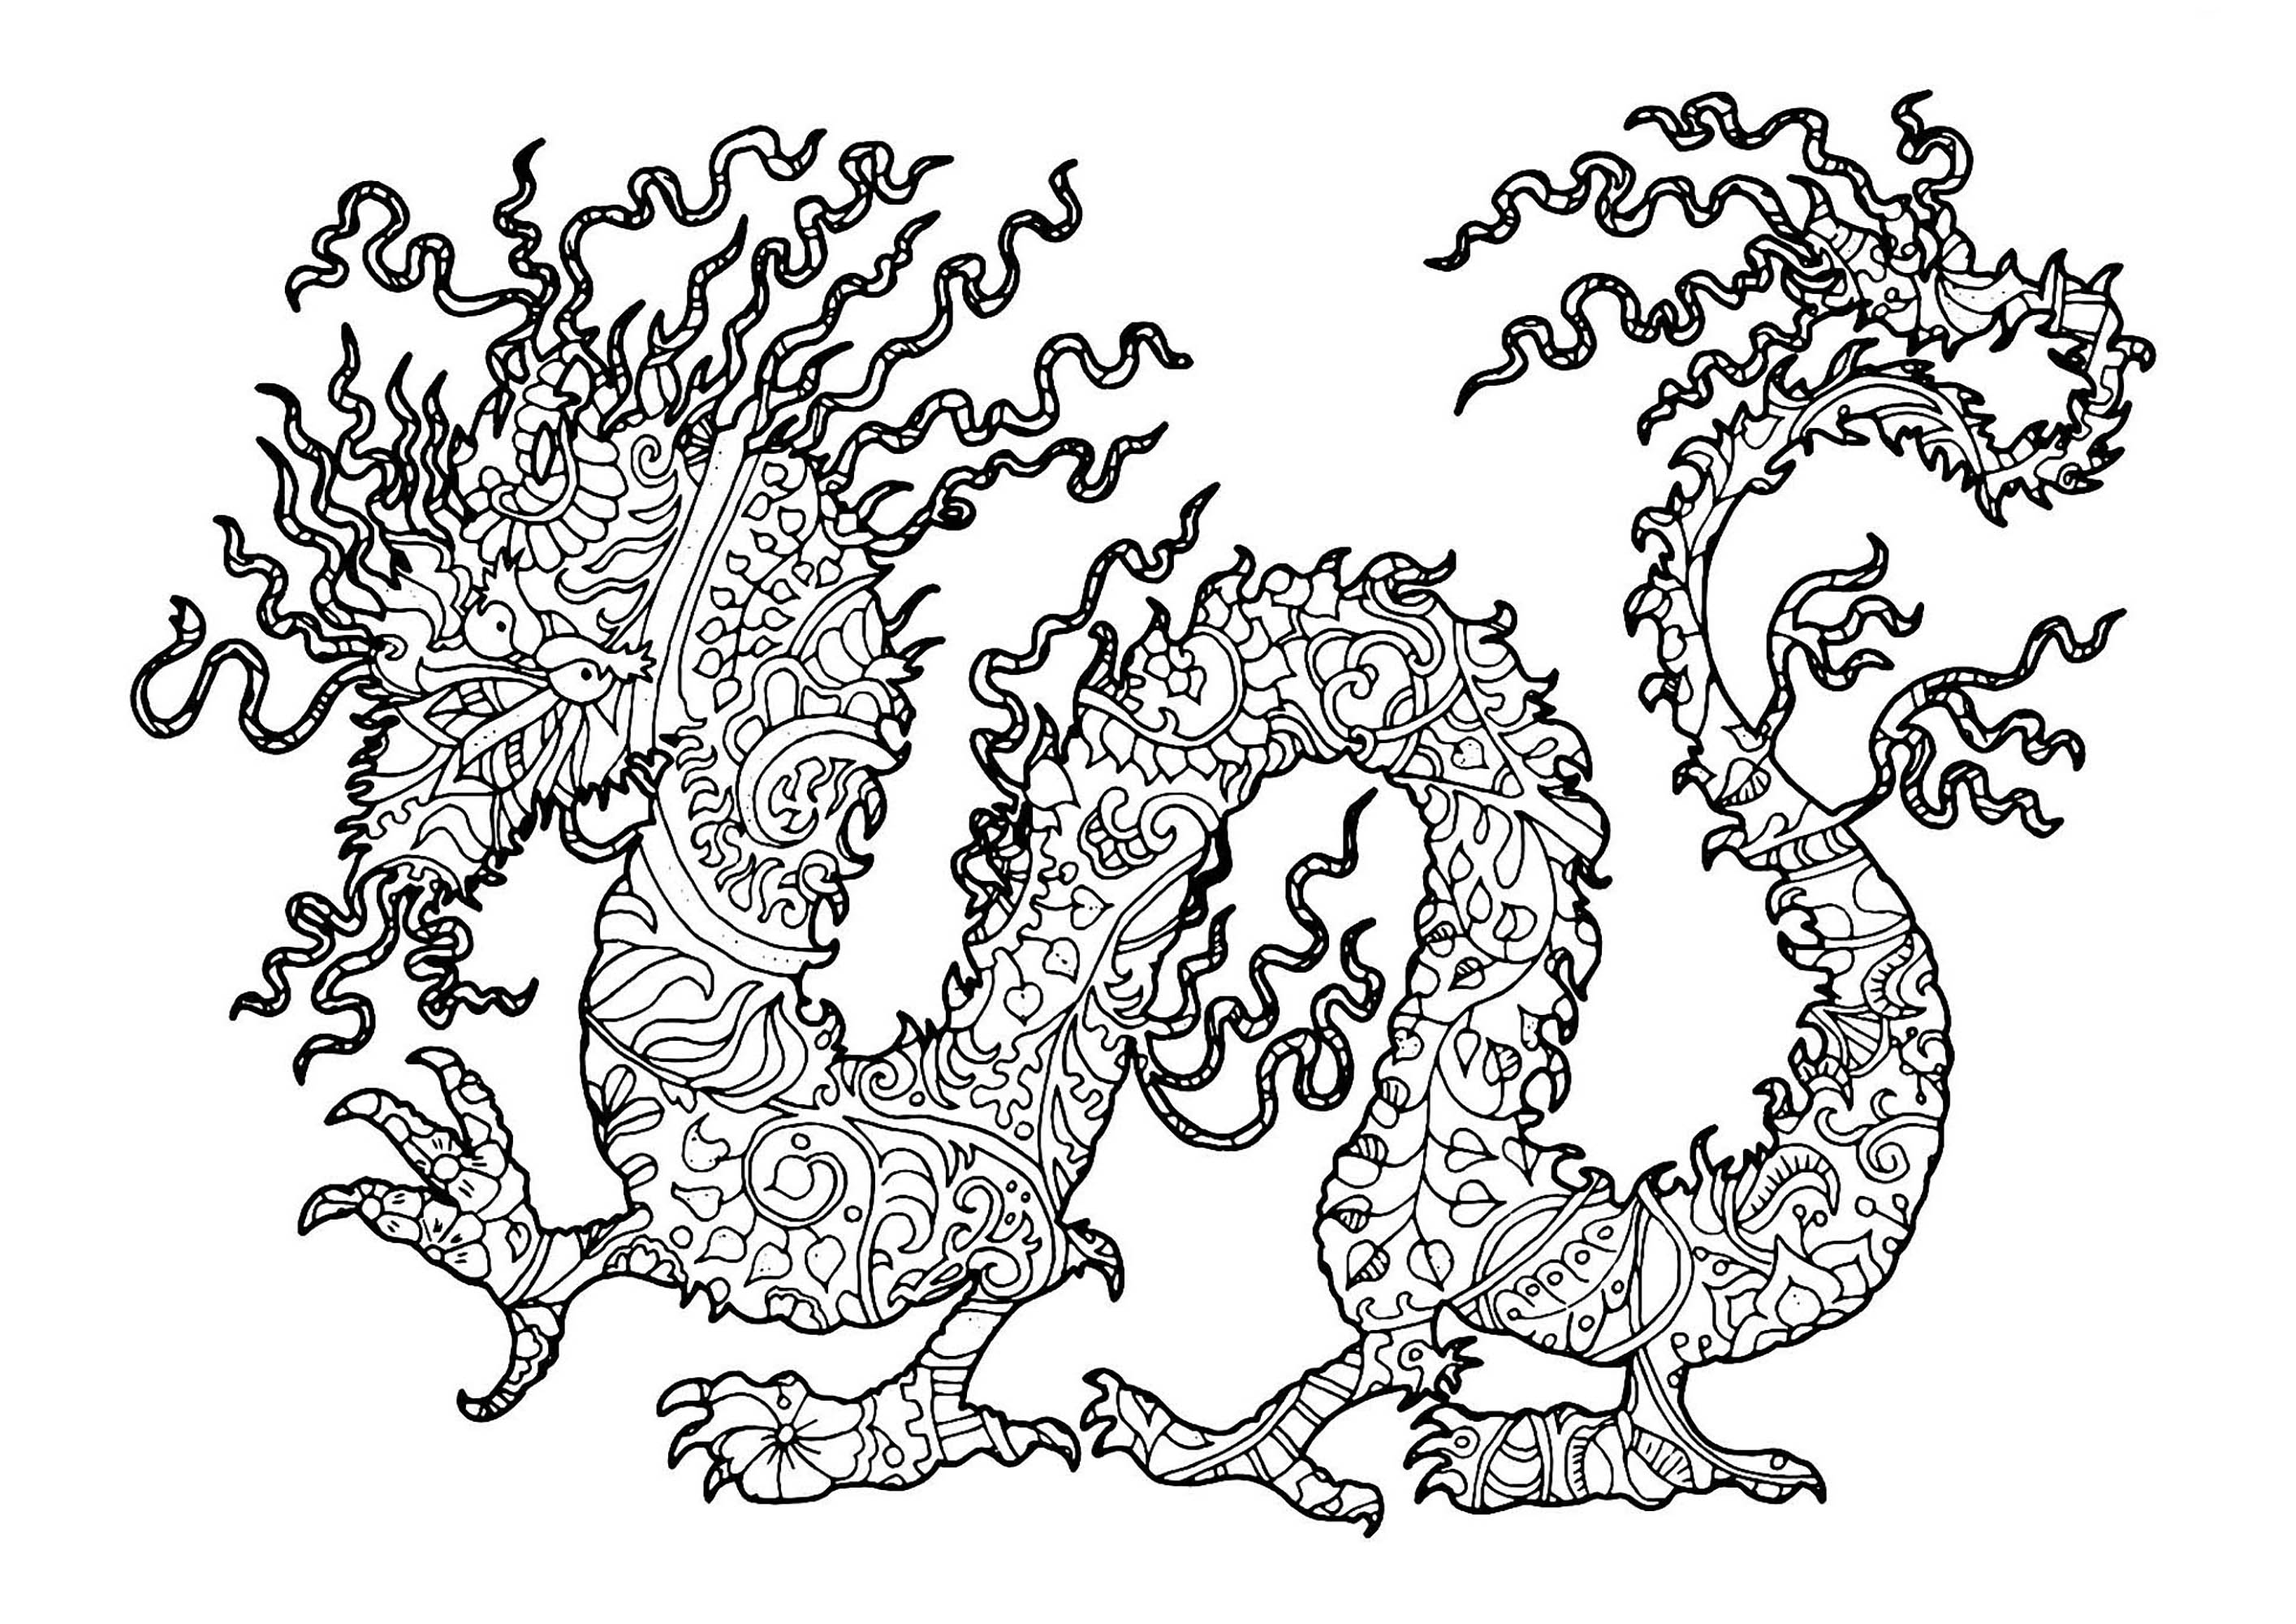 Dragon complexe dragons coloriages difficiles pour adultes - Coloriages de dragons ...